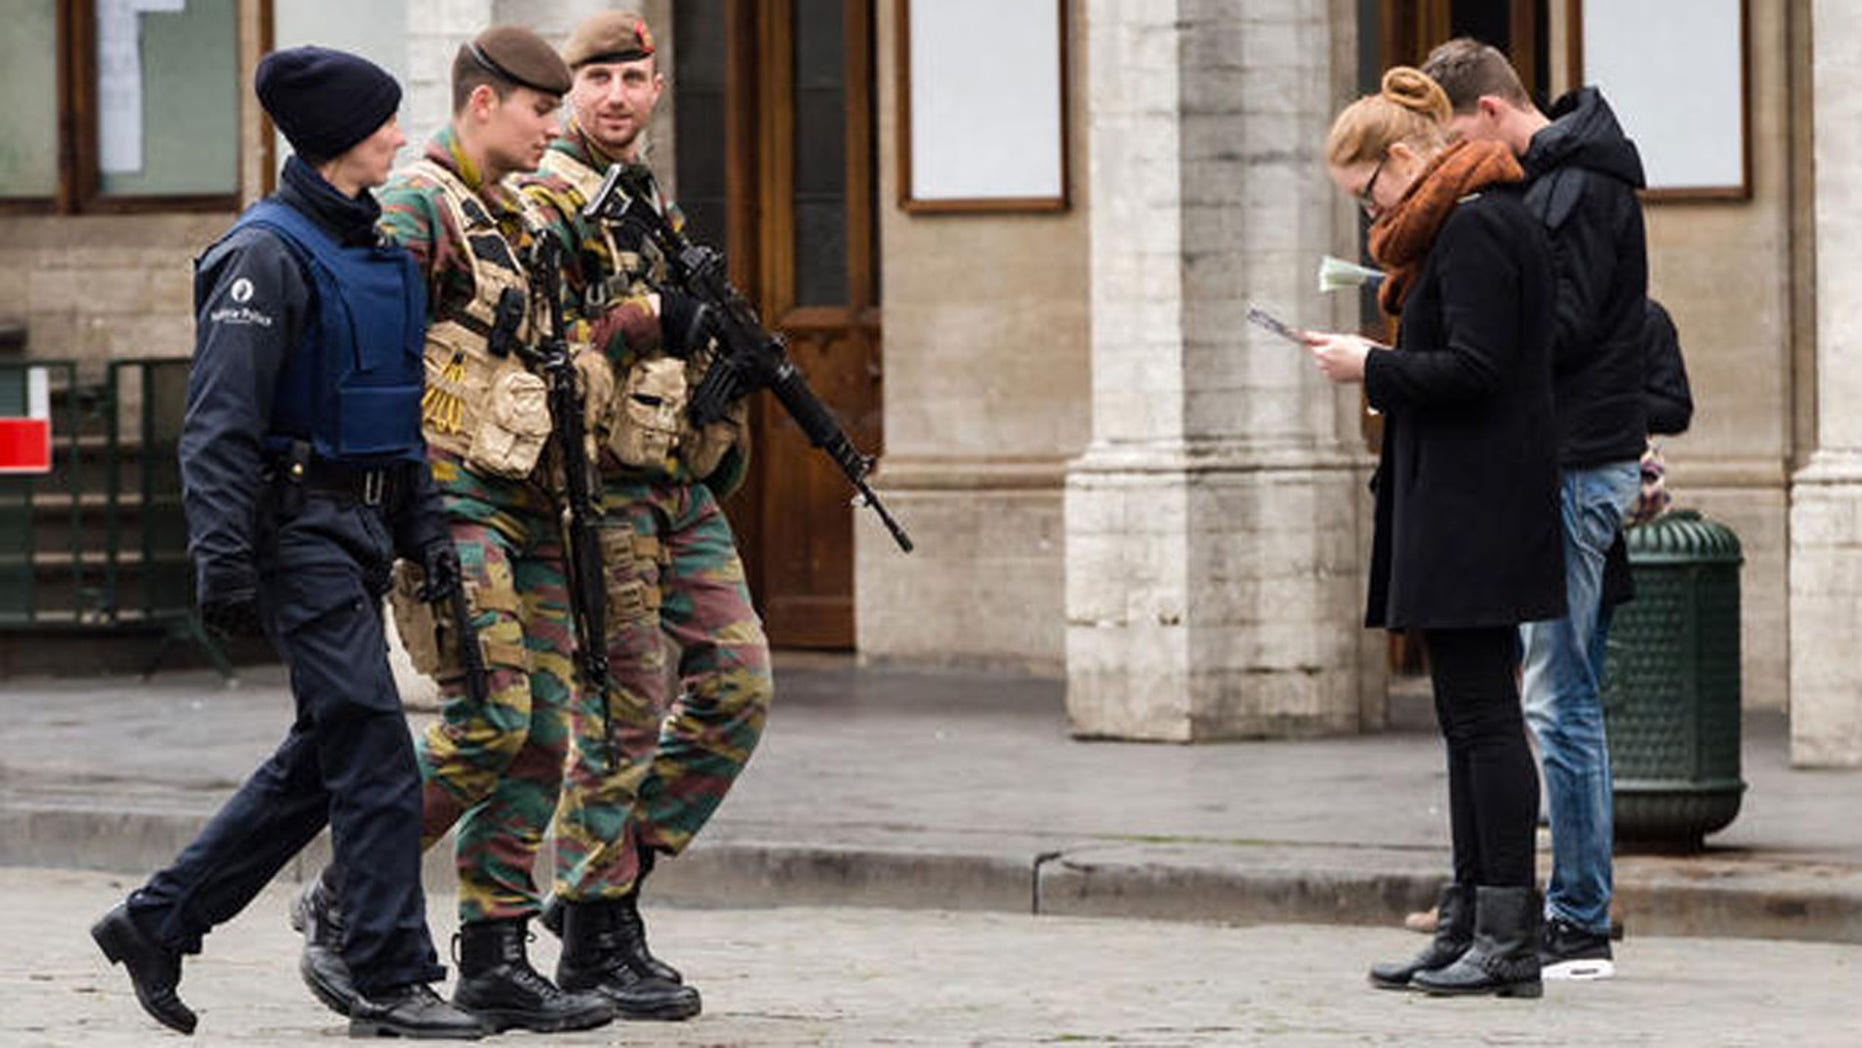 The attack in Brussels are adding to already softening travel to Europe.